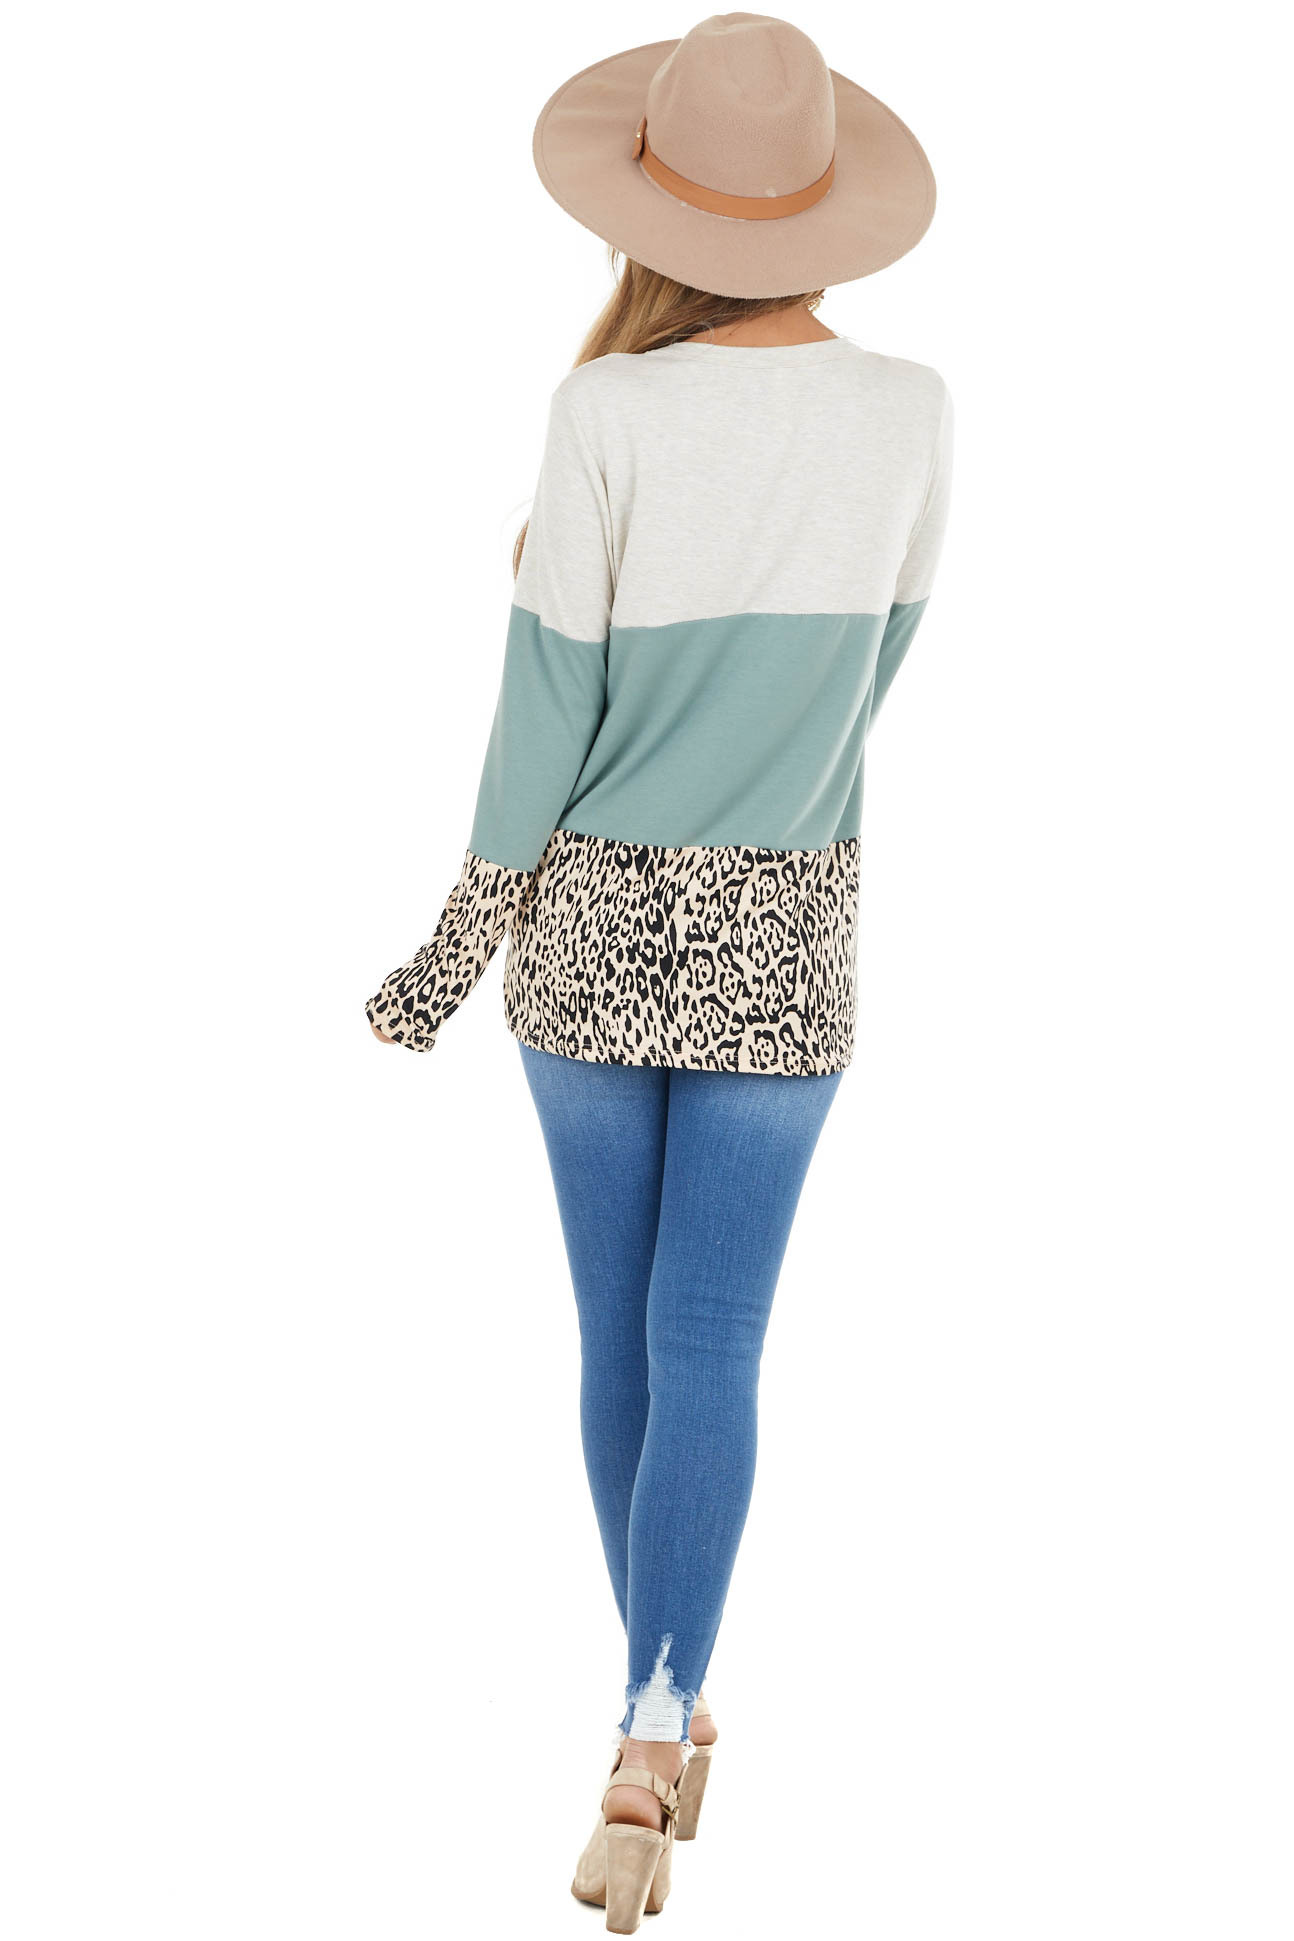 Oatmeal and Sage Colorblock and Leopard Print Contrast Top